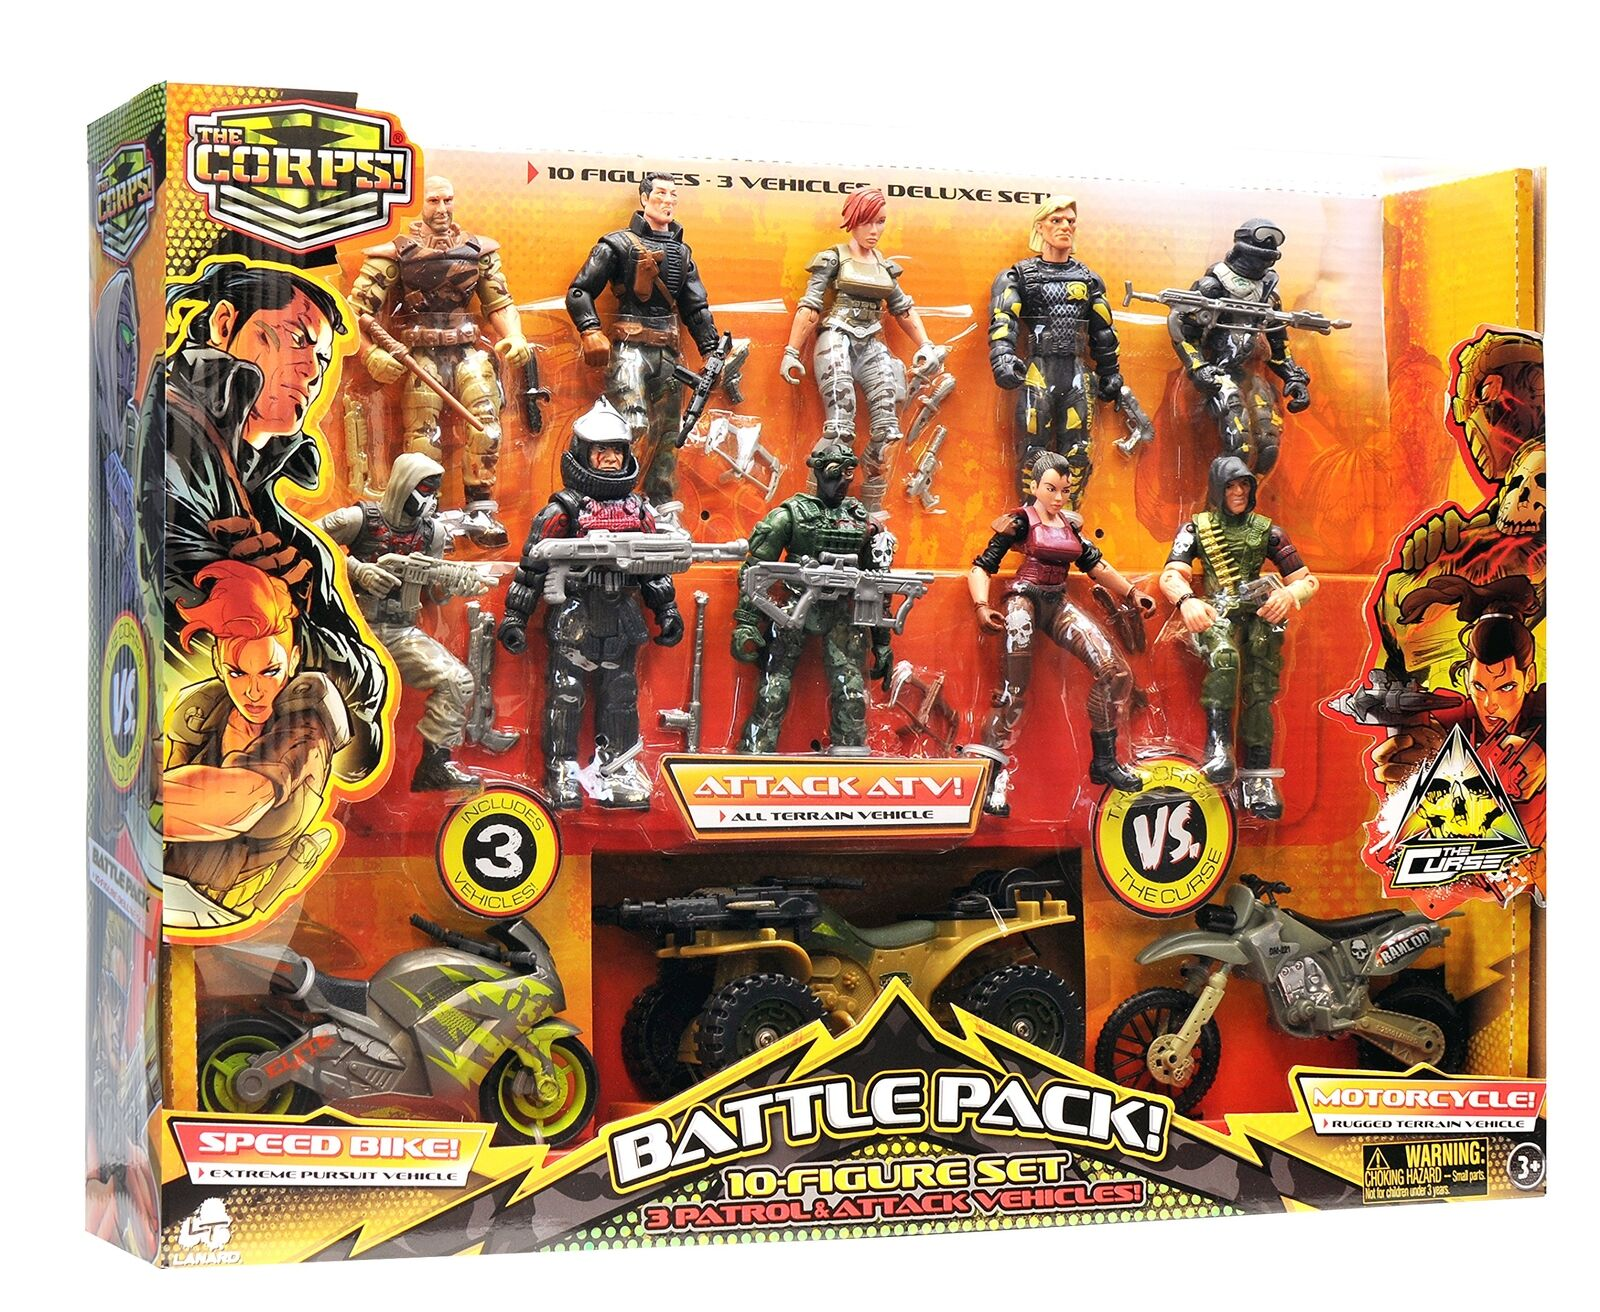 The Corps Special Forces Action Action Action Figures and Vehicle Deluxe Playset 3ee052